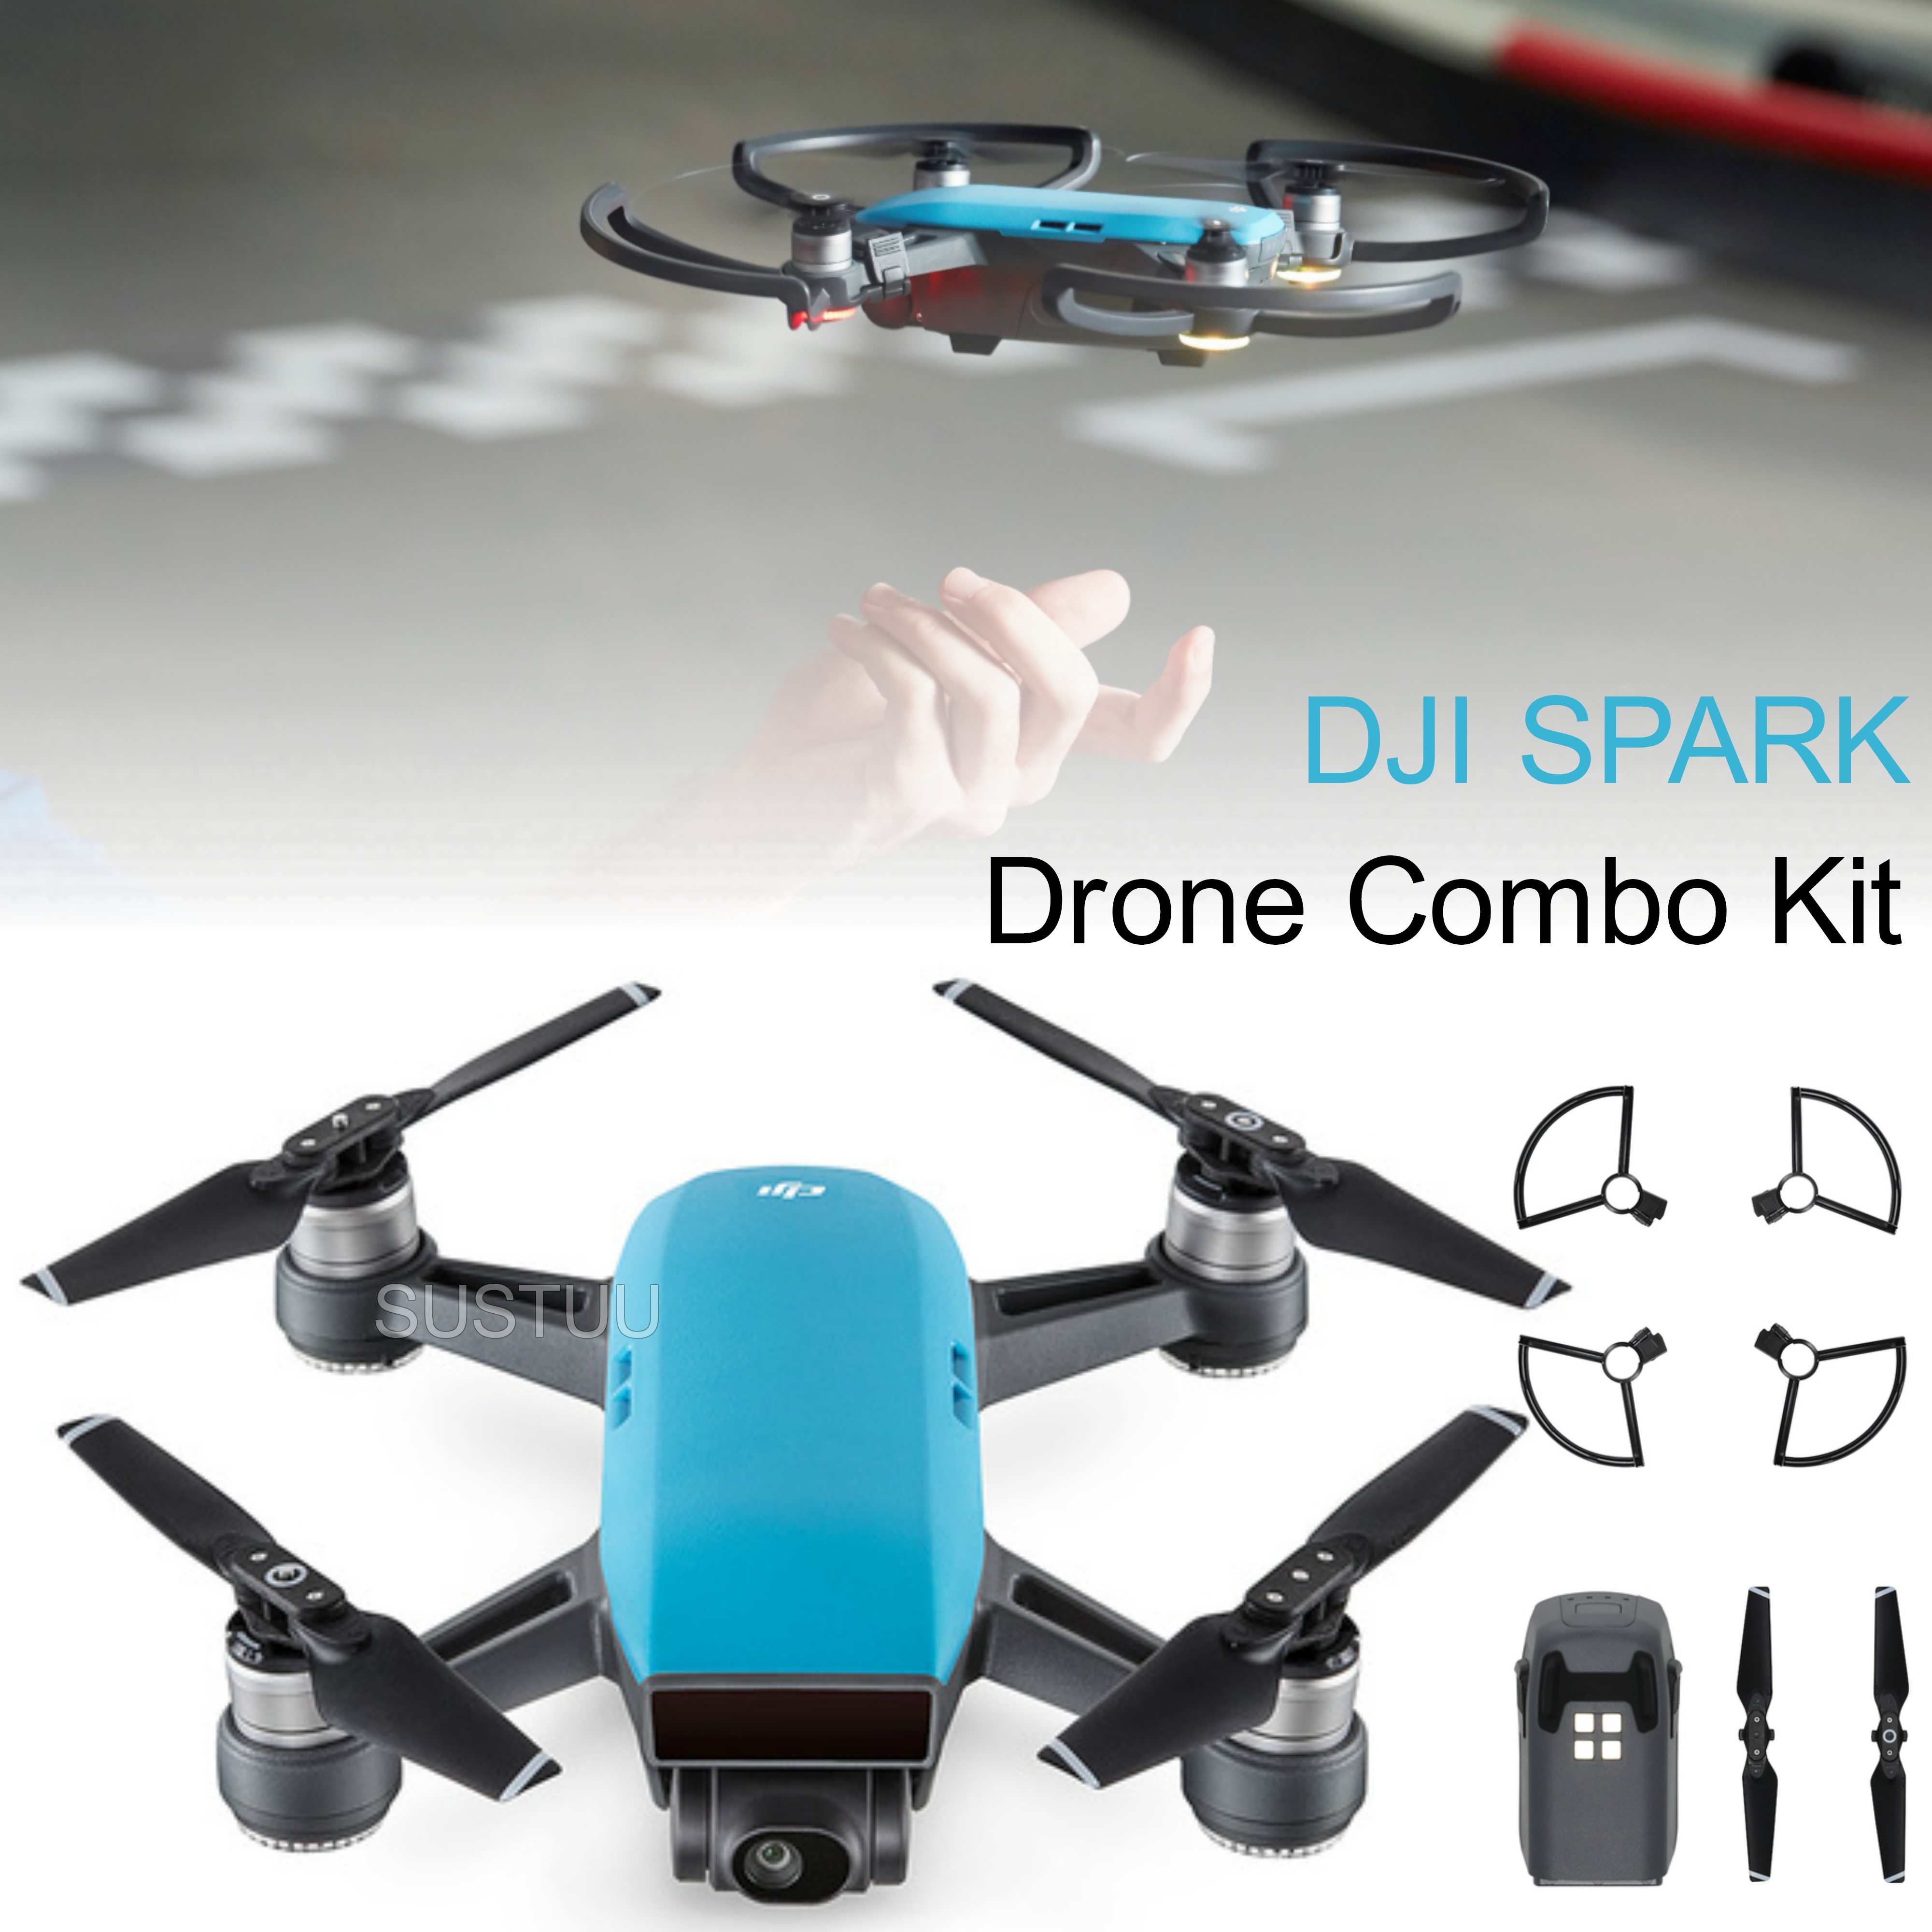 DJI SPARK Fly More Camera Drone Combo Kit|12MP|HD 1080p|CP.PT.000907|Sky Blue